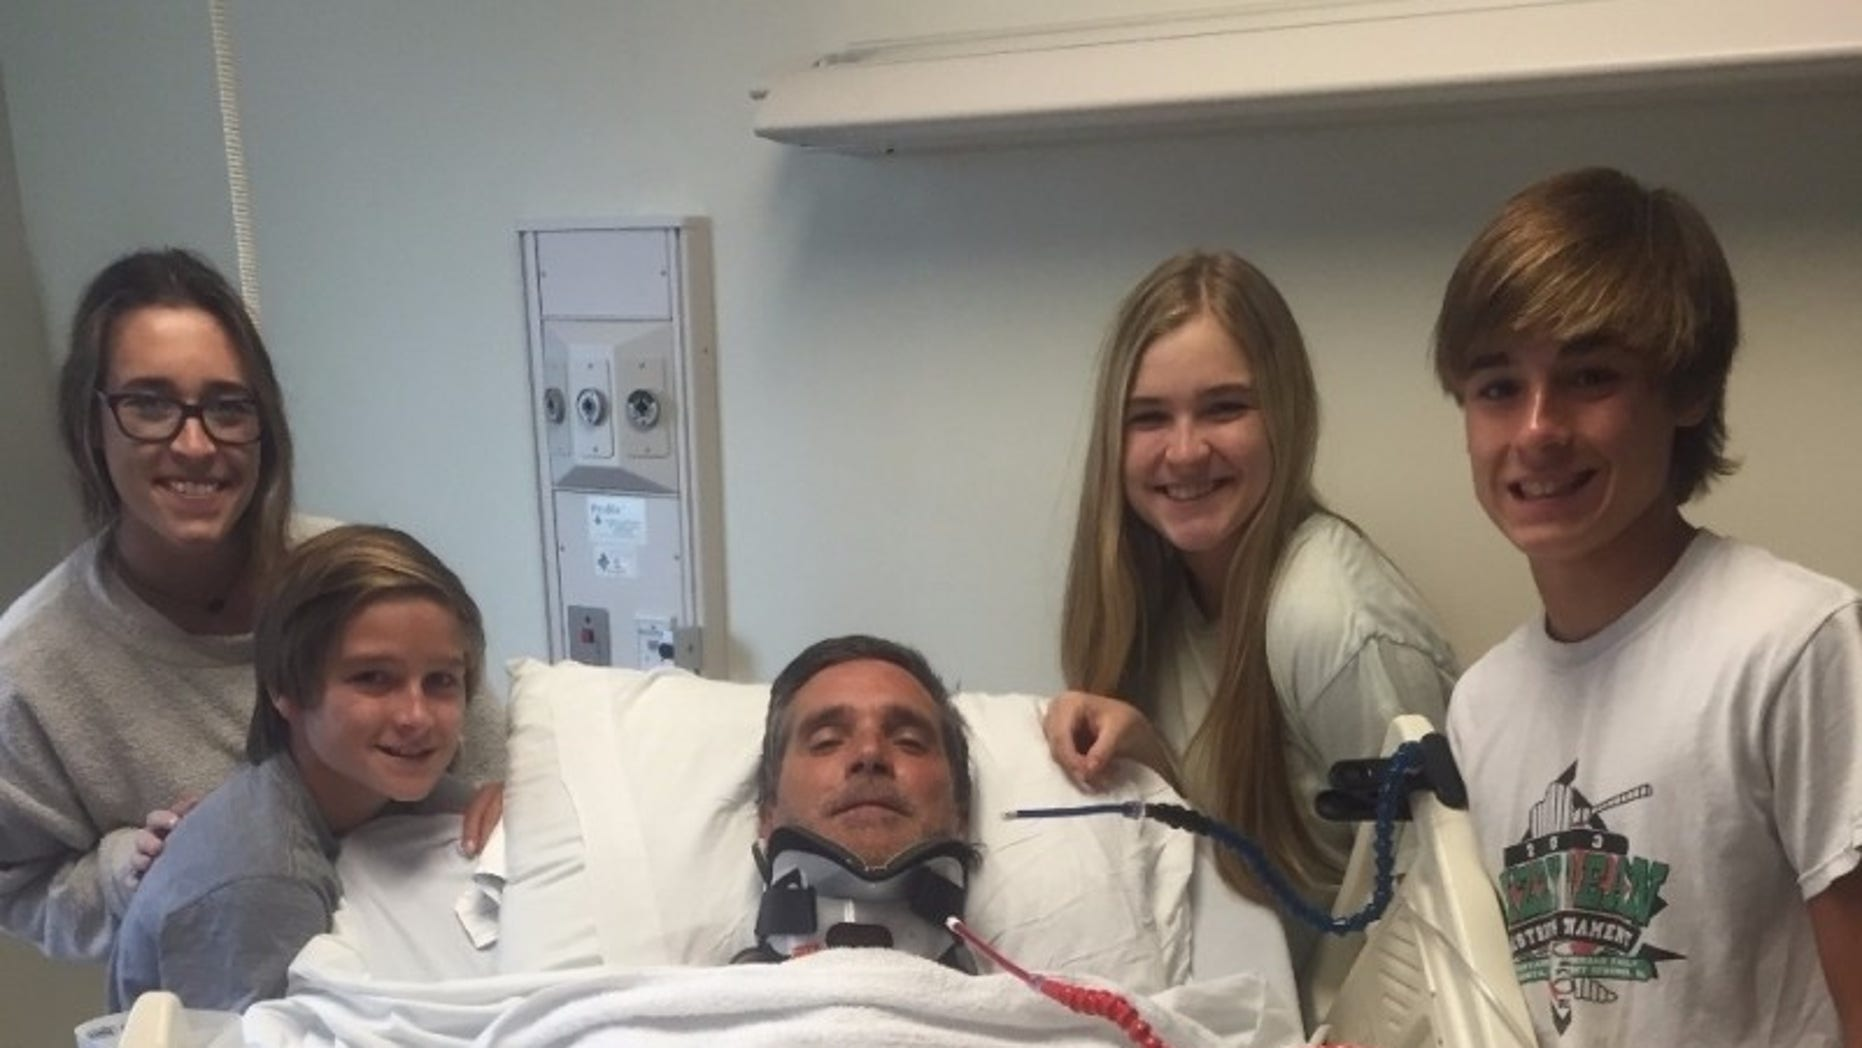 Stephen Franke was paralyzed in a bodysurfing accident.